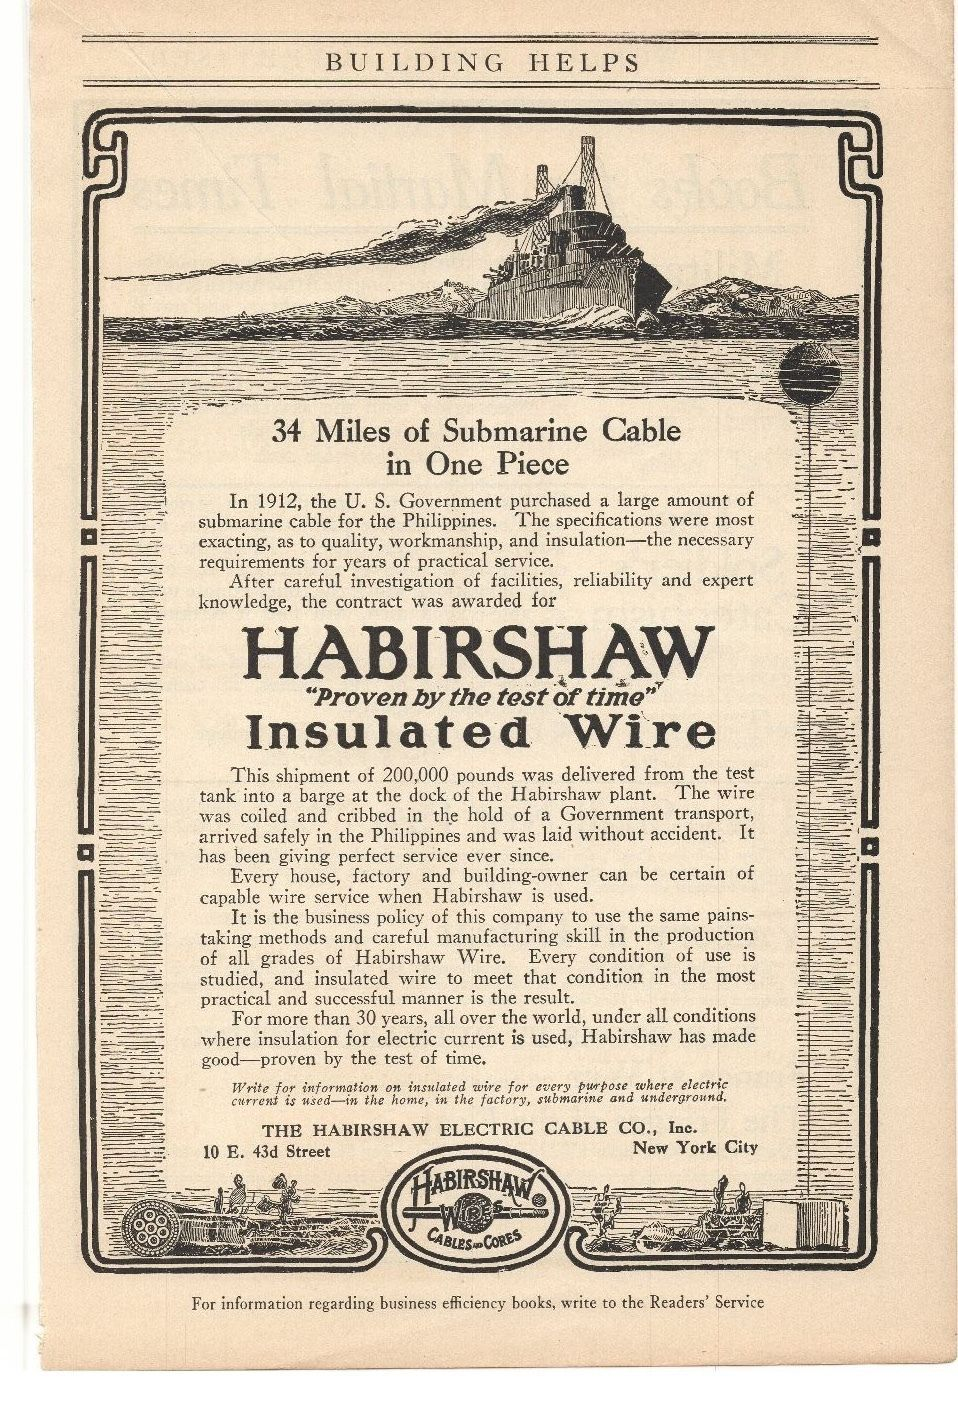 Insulated Wire Advertisement Collectibles Collection Here 1916 Habirshaw Electric Cable Co 1910-19